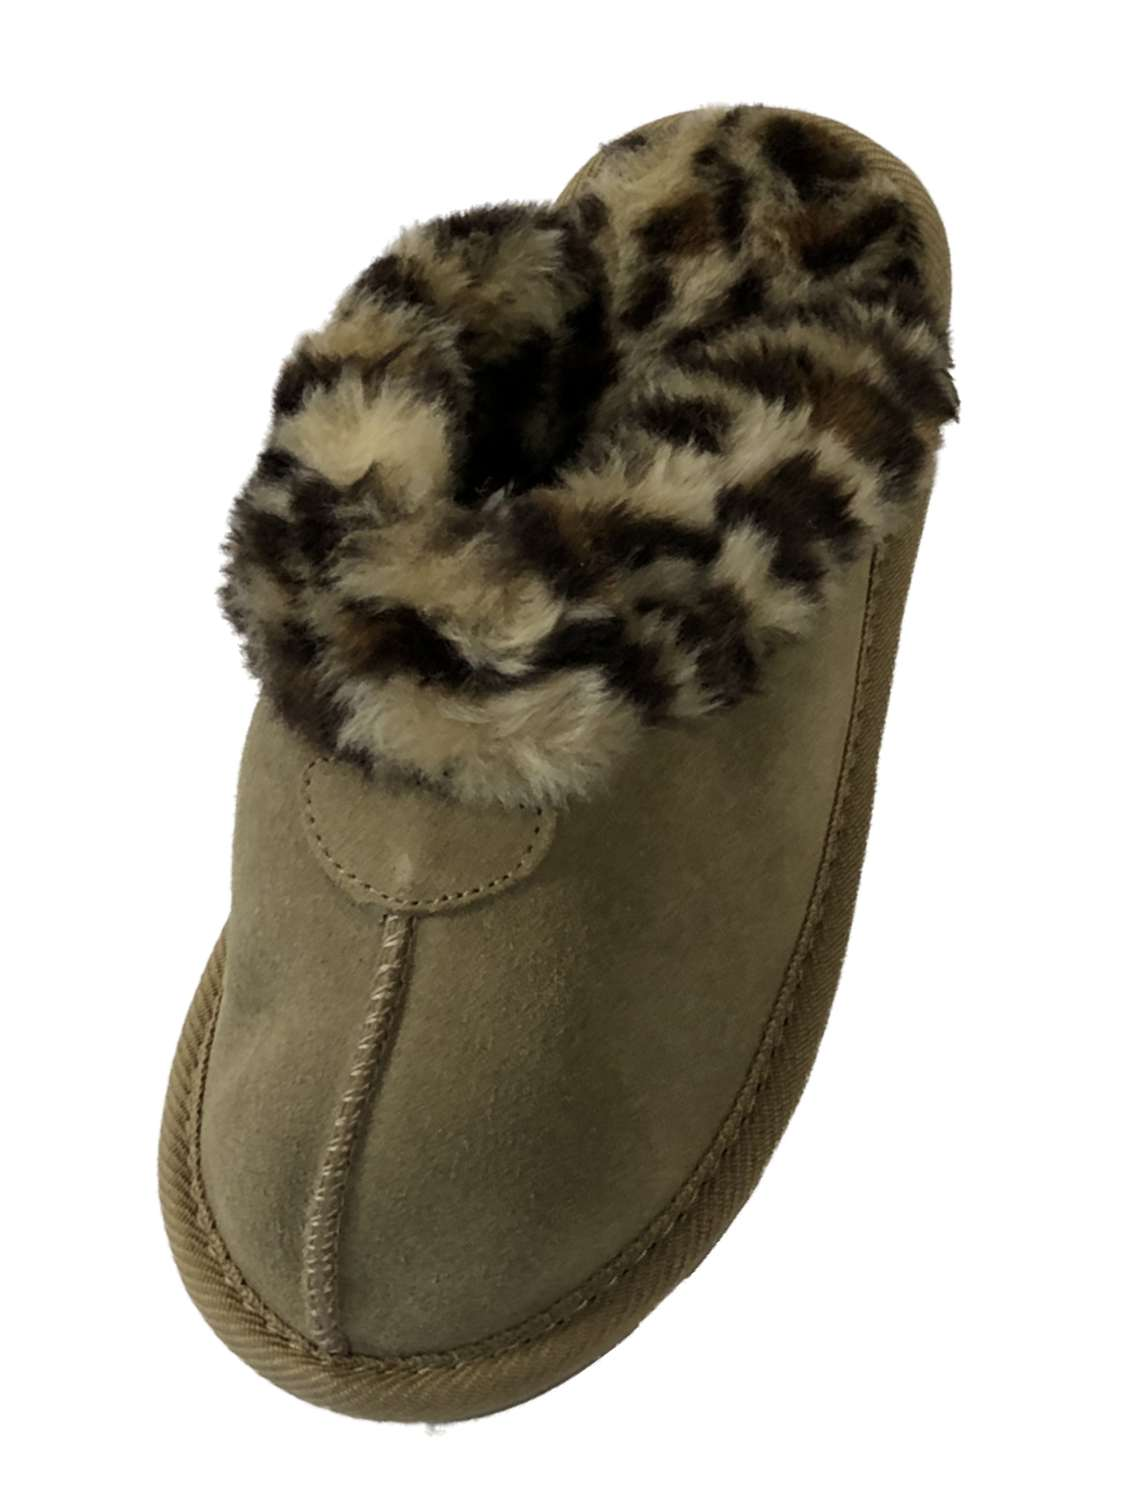 Girls Tan Suede Scuff Slippers House Shoes With Faux Fur Leopard Trim